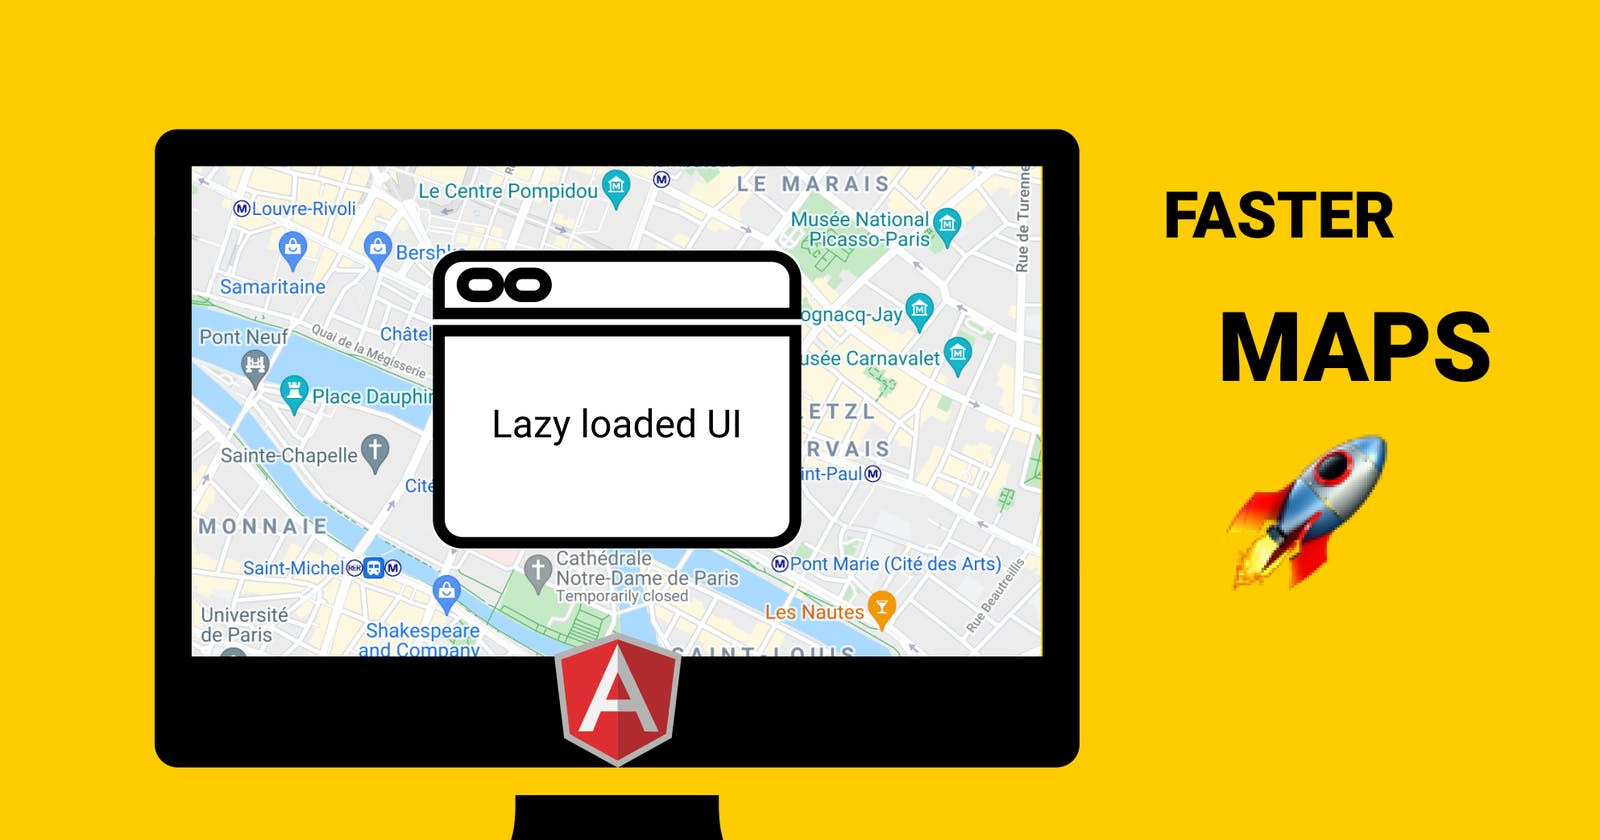 Faster maps with lazy-loaded components